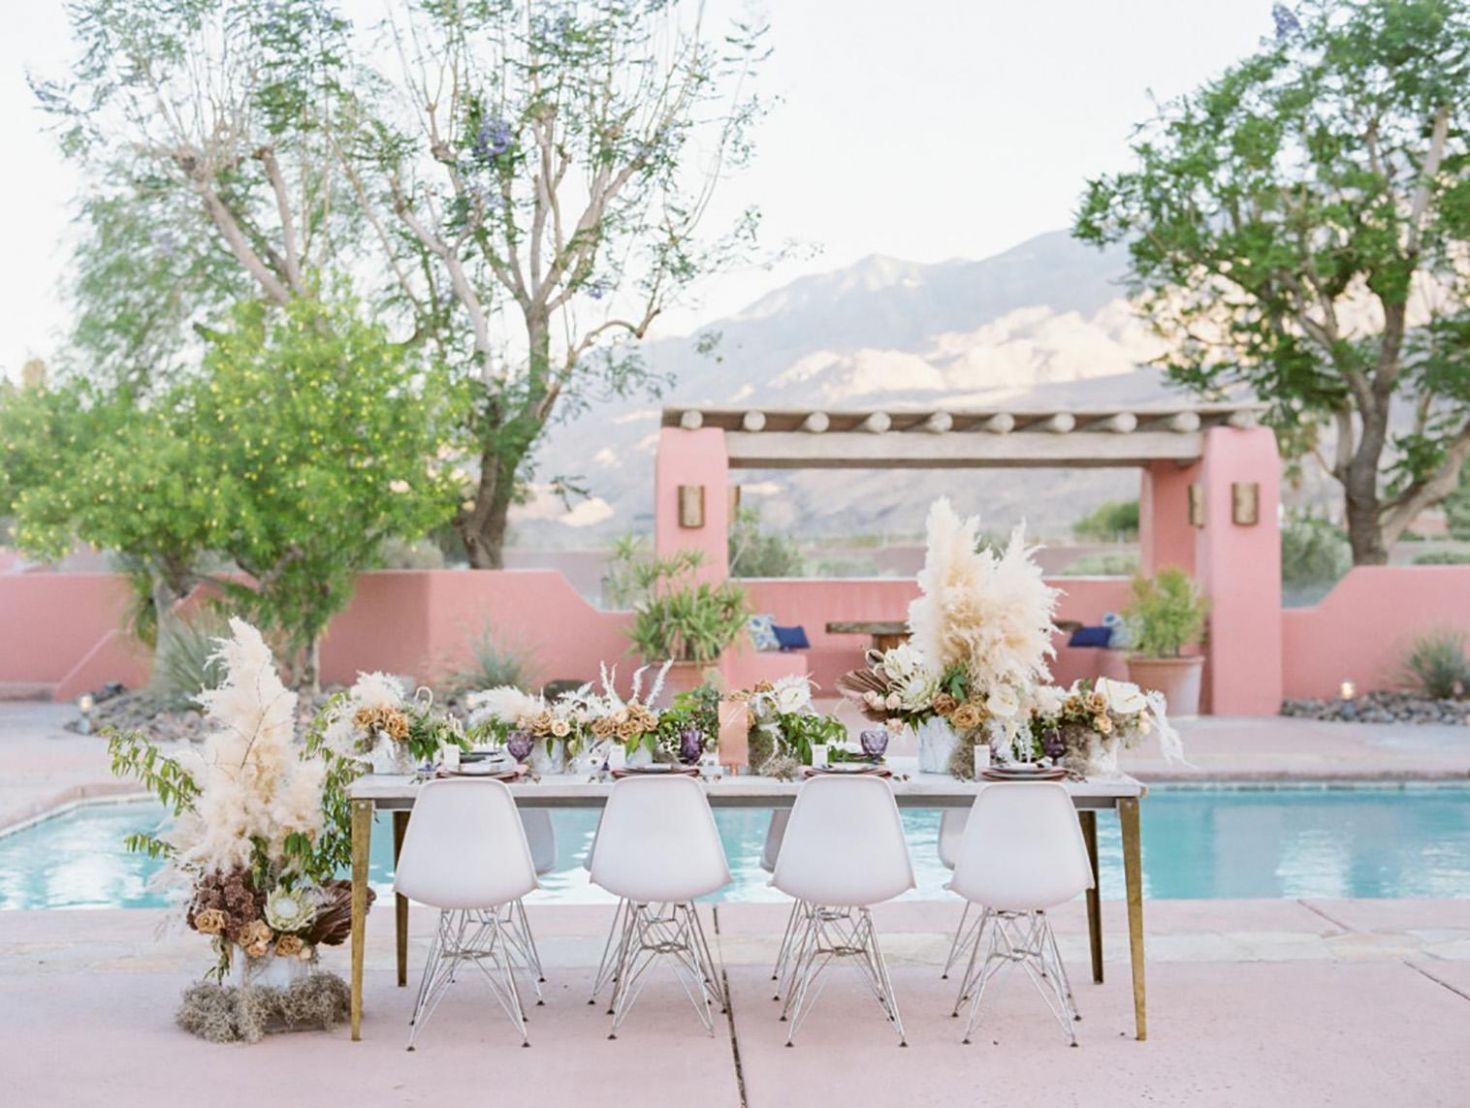 Our Favorite Venues to Host the California Pool Party of Your Dreams - pool party venue ideas